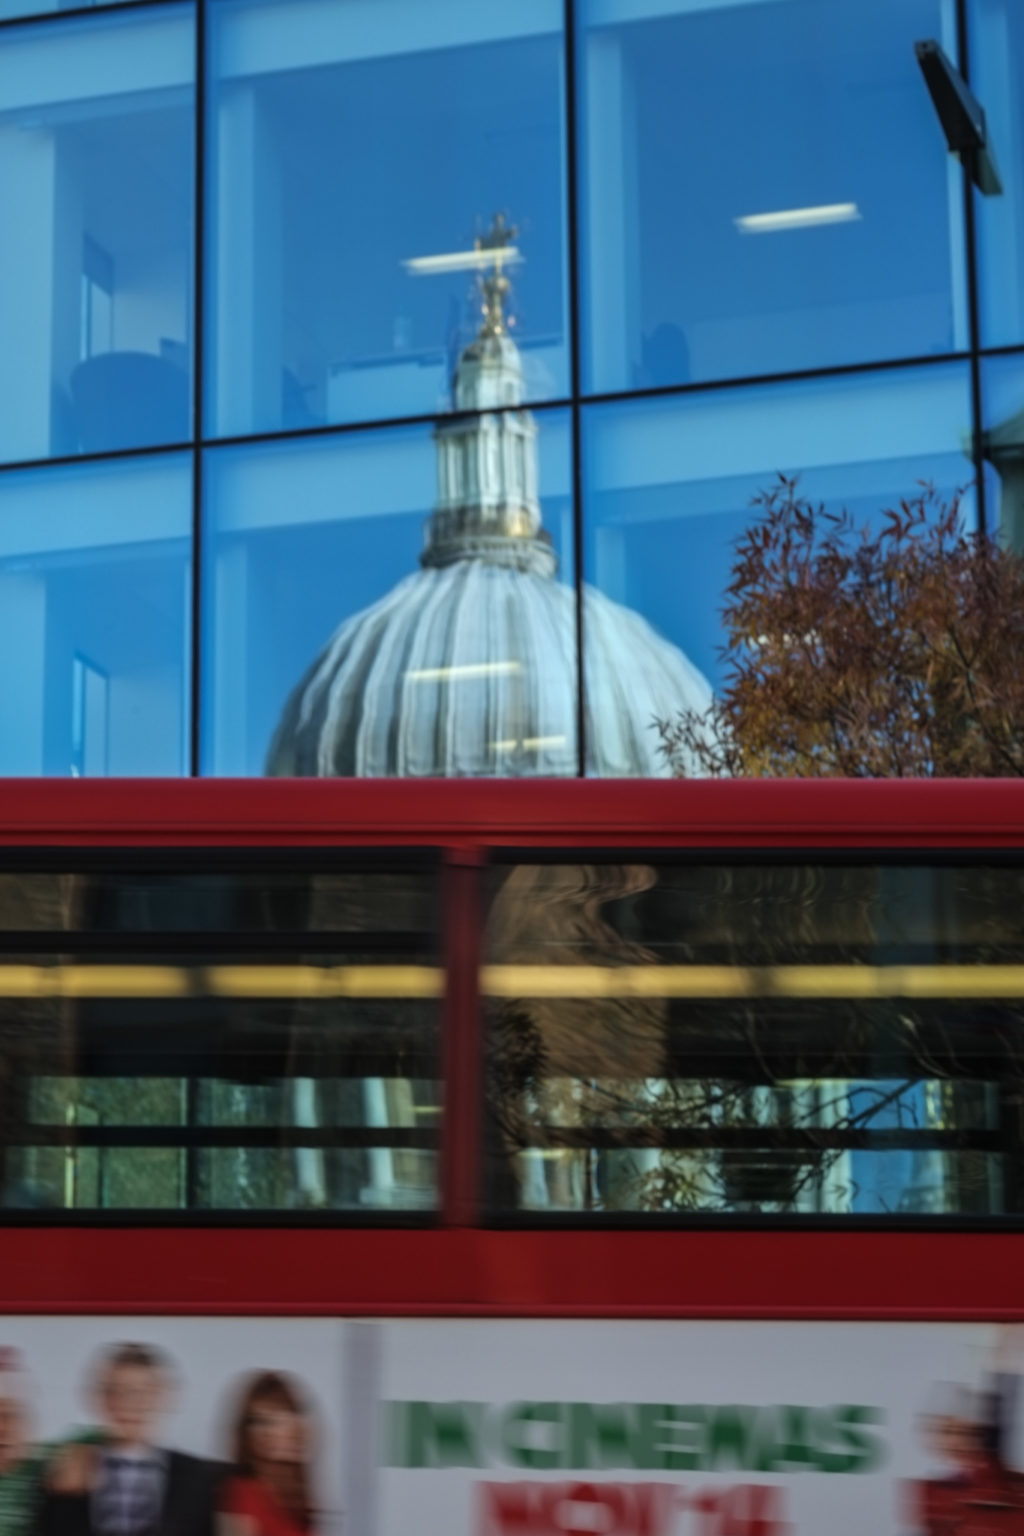 Red London bus passes reflection of St Pauls in modern office block.